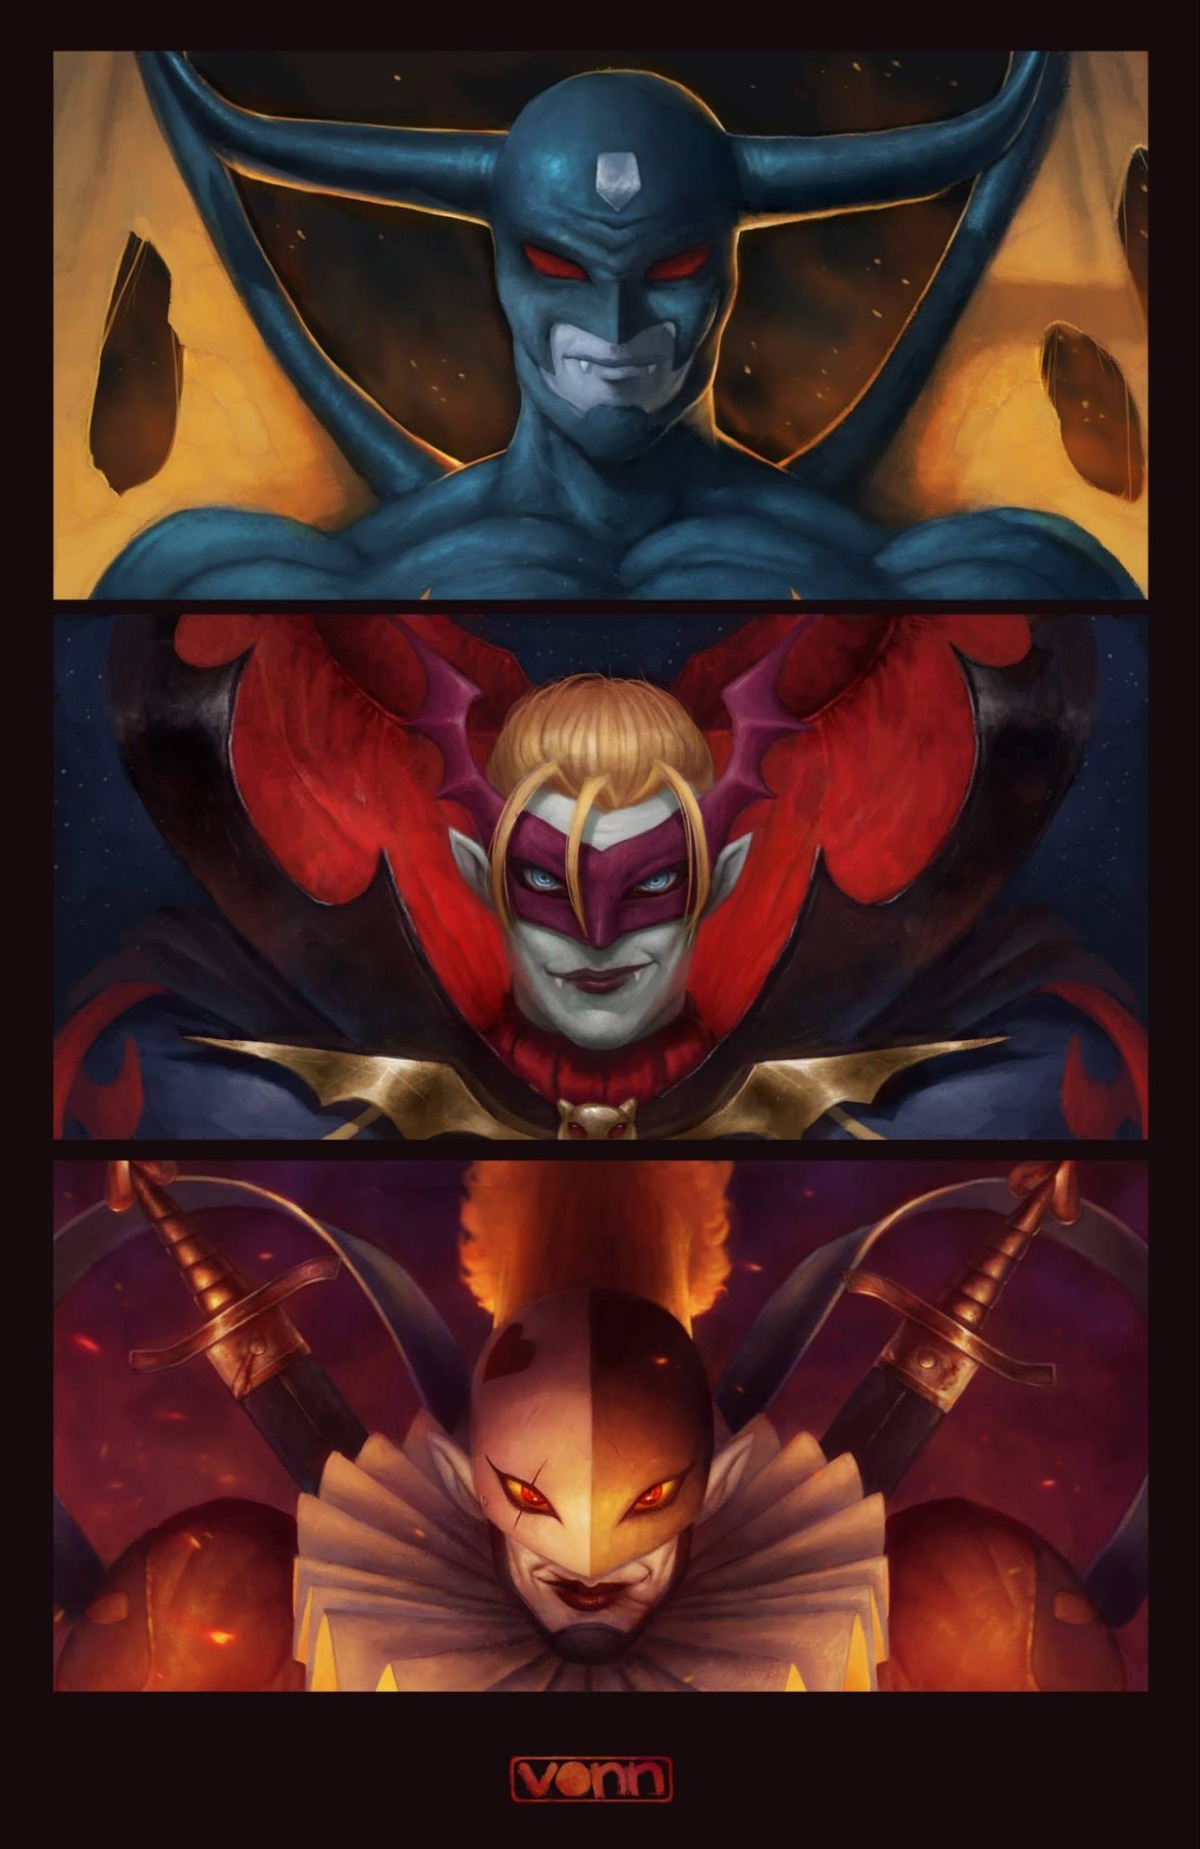 The Demon, the Vampire, and the Clown.